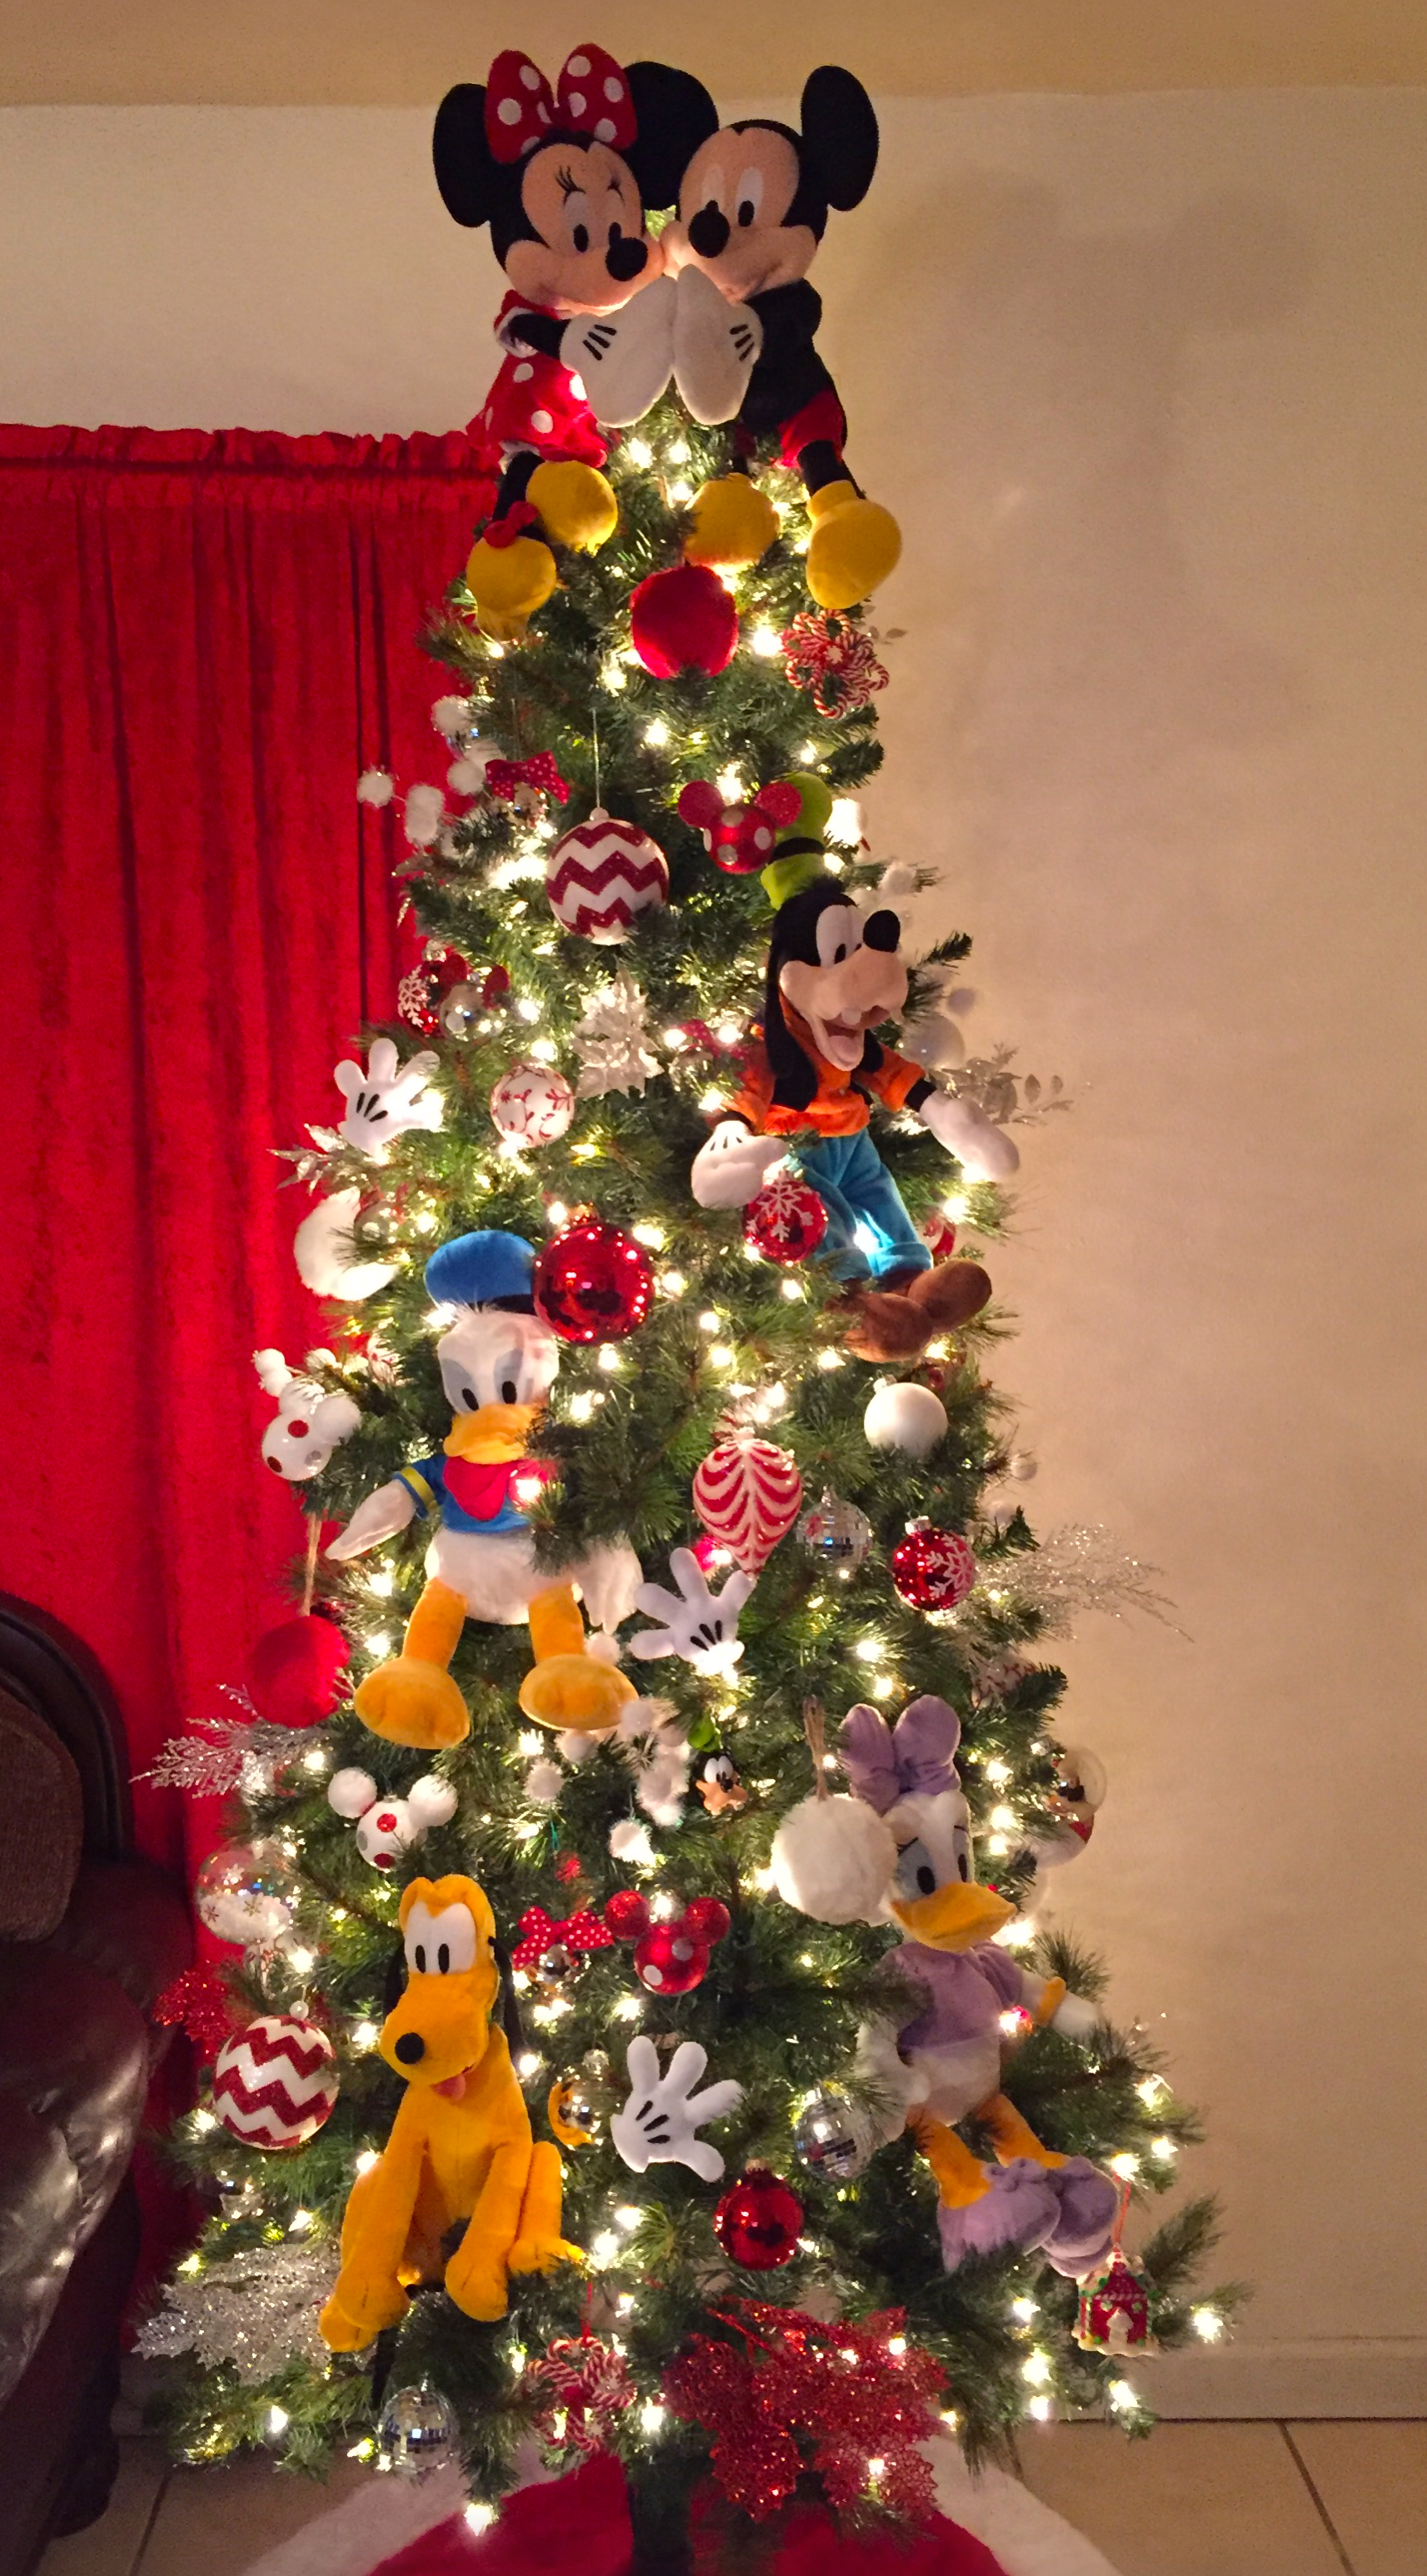 Décorations De Noel Disney Christmas Tree Mickey Mouse Home Decor That I